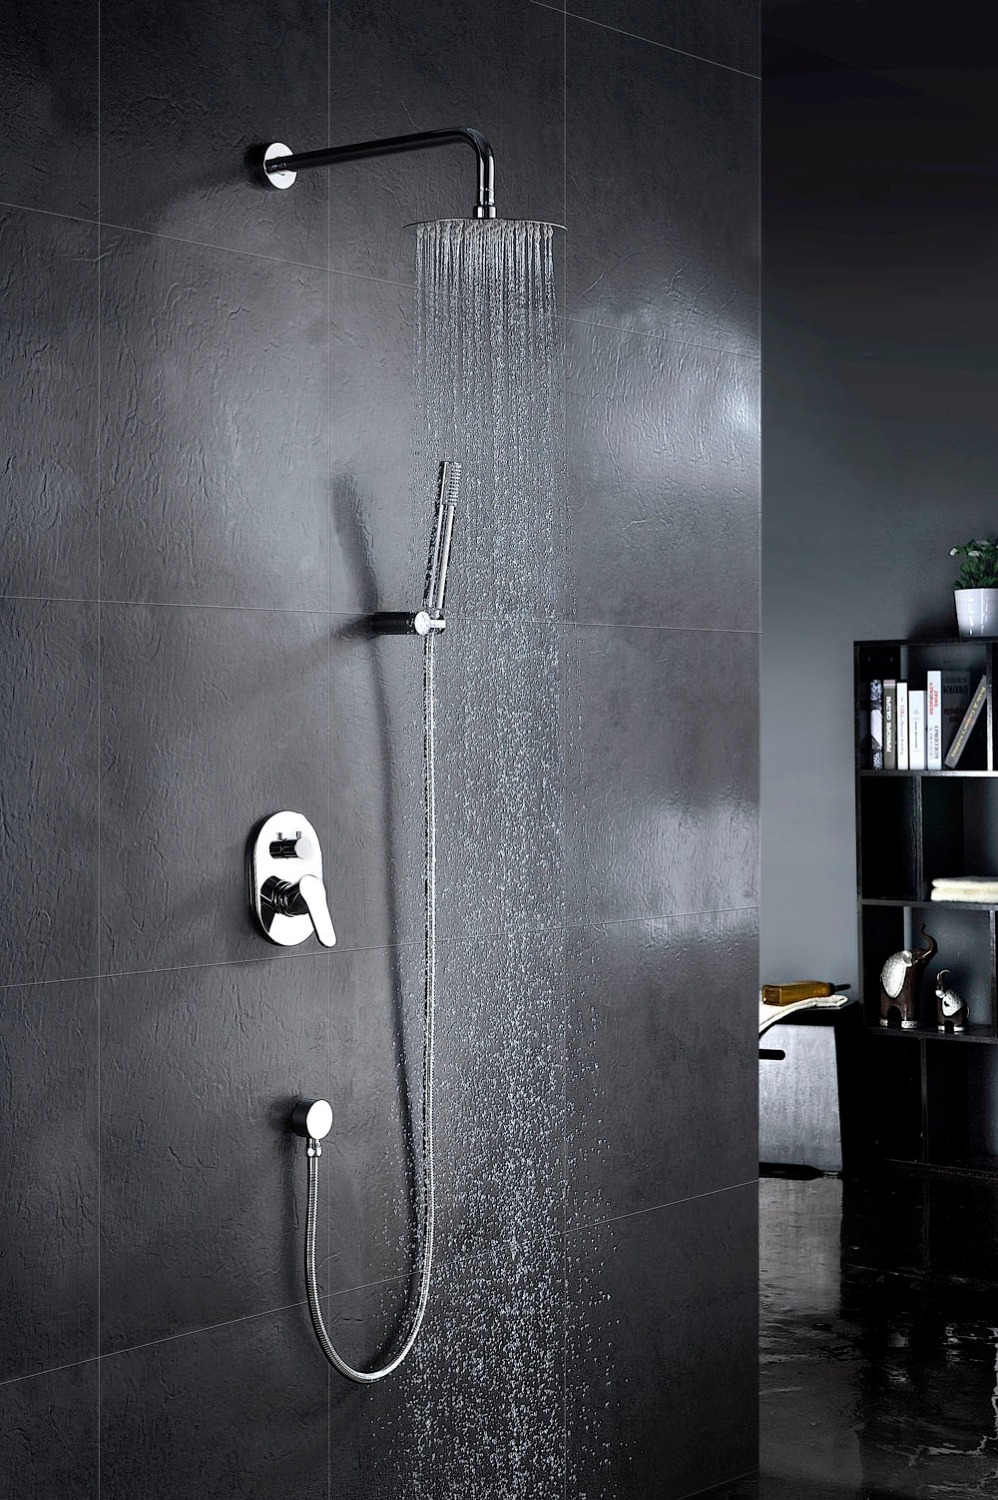 Concealed Shower Mixer With Diverter Brass Shower Arm with 8Stainless Steel Shower Head Brass Hand Shower